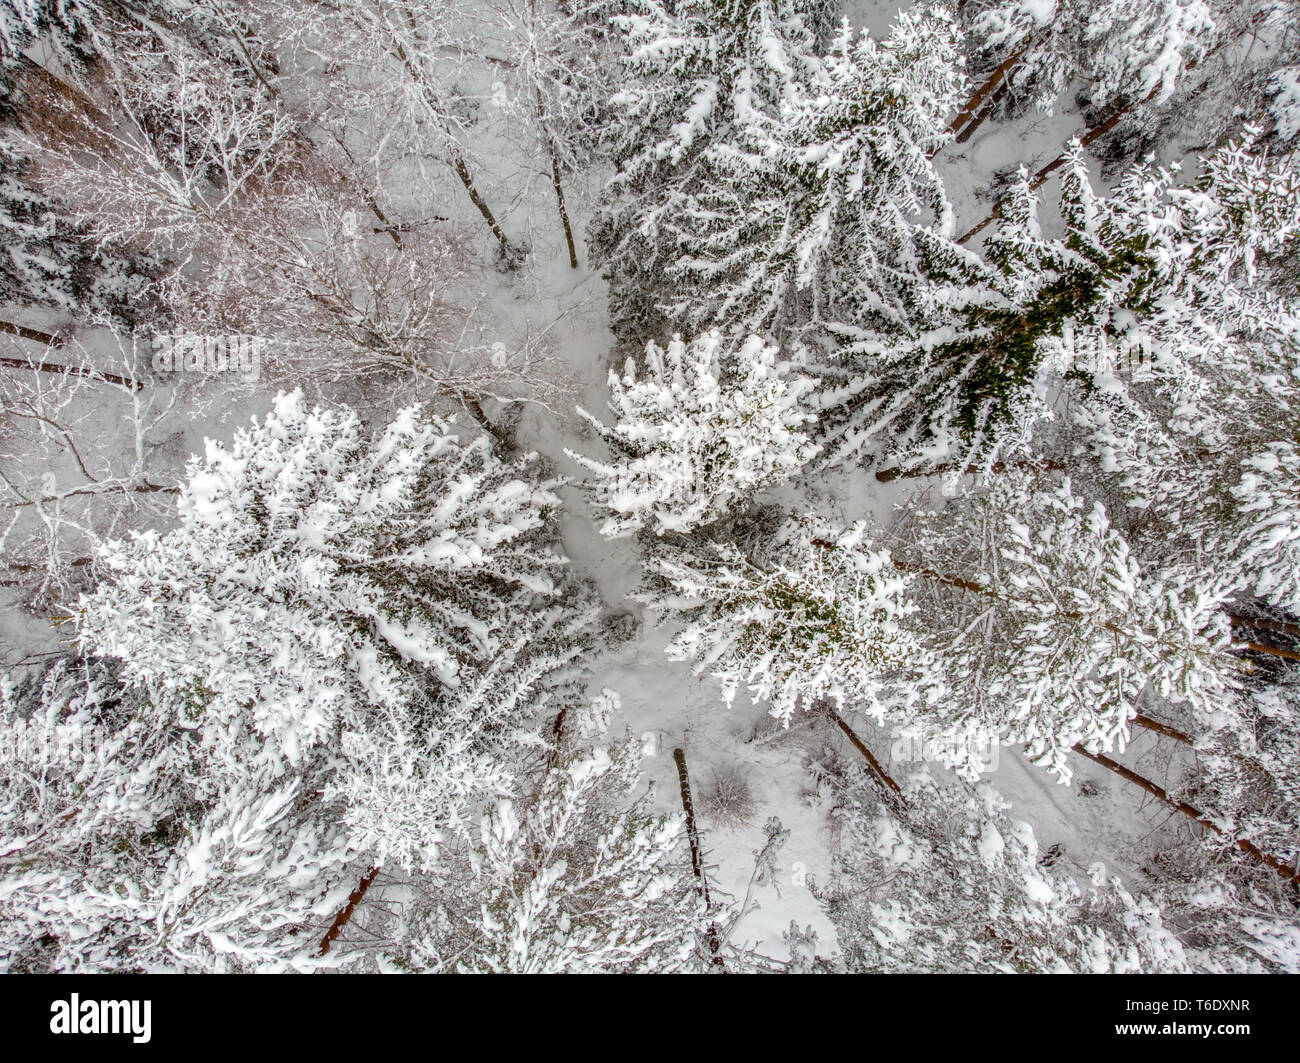 Evergreen forest in winter Stock Photo